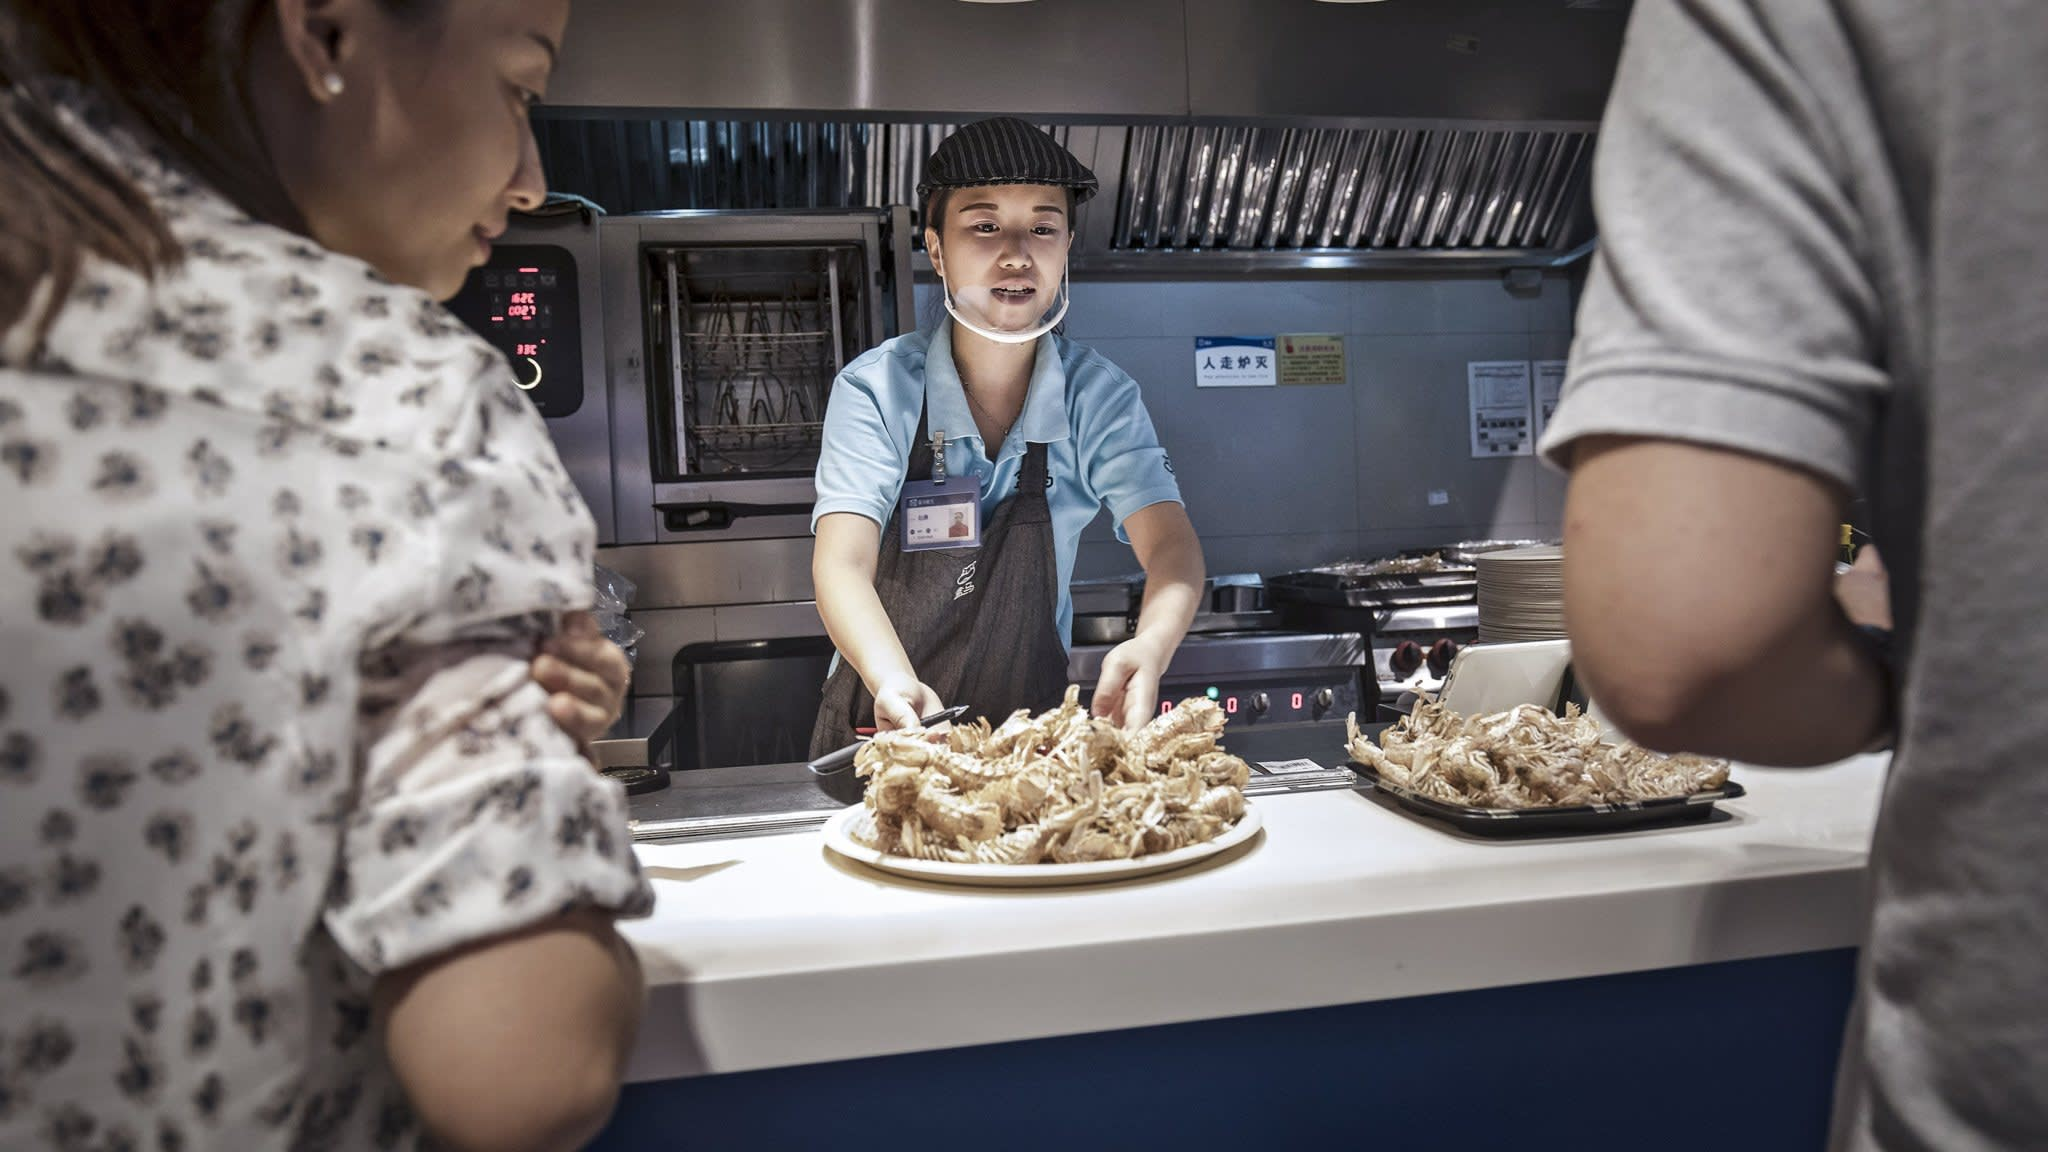 China's food stores attract a new wave of snackers and e-shoppers | Financial Times